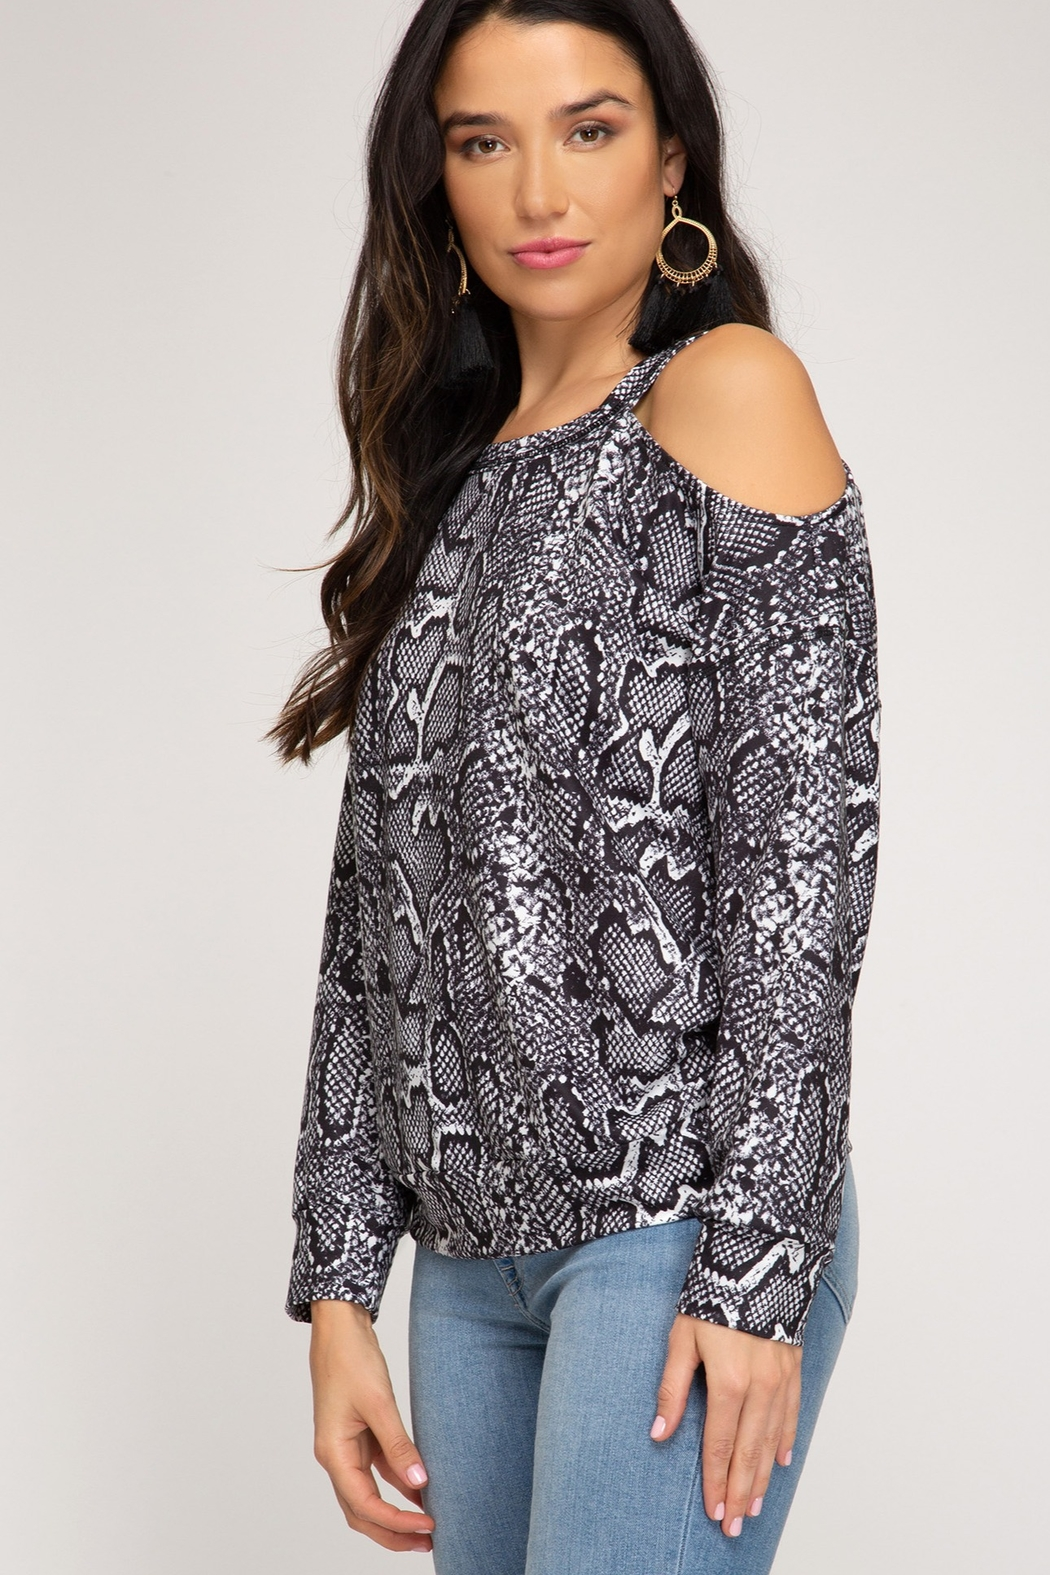 She and Sky LONG SLEEVE REPTILE PRINTED TOP - Front Full Image